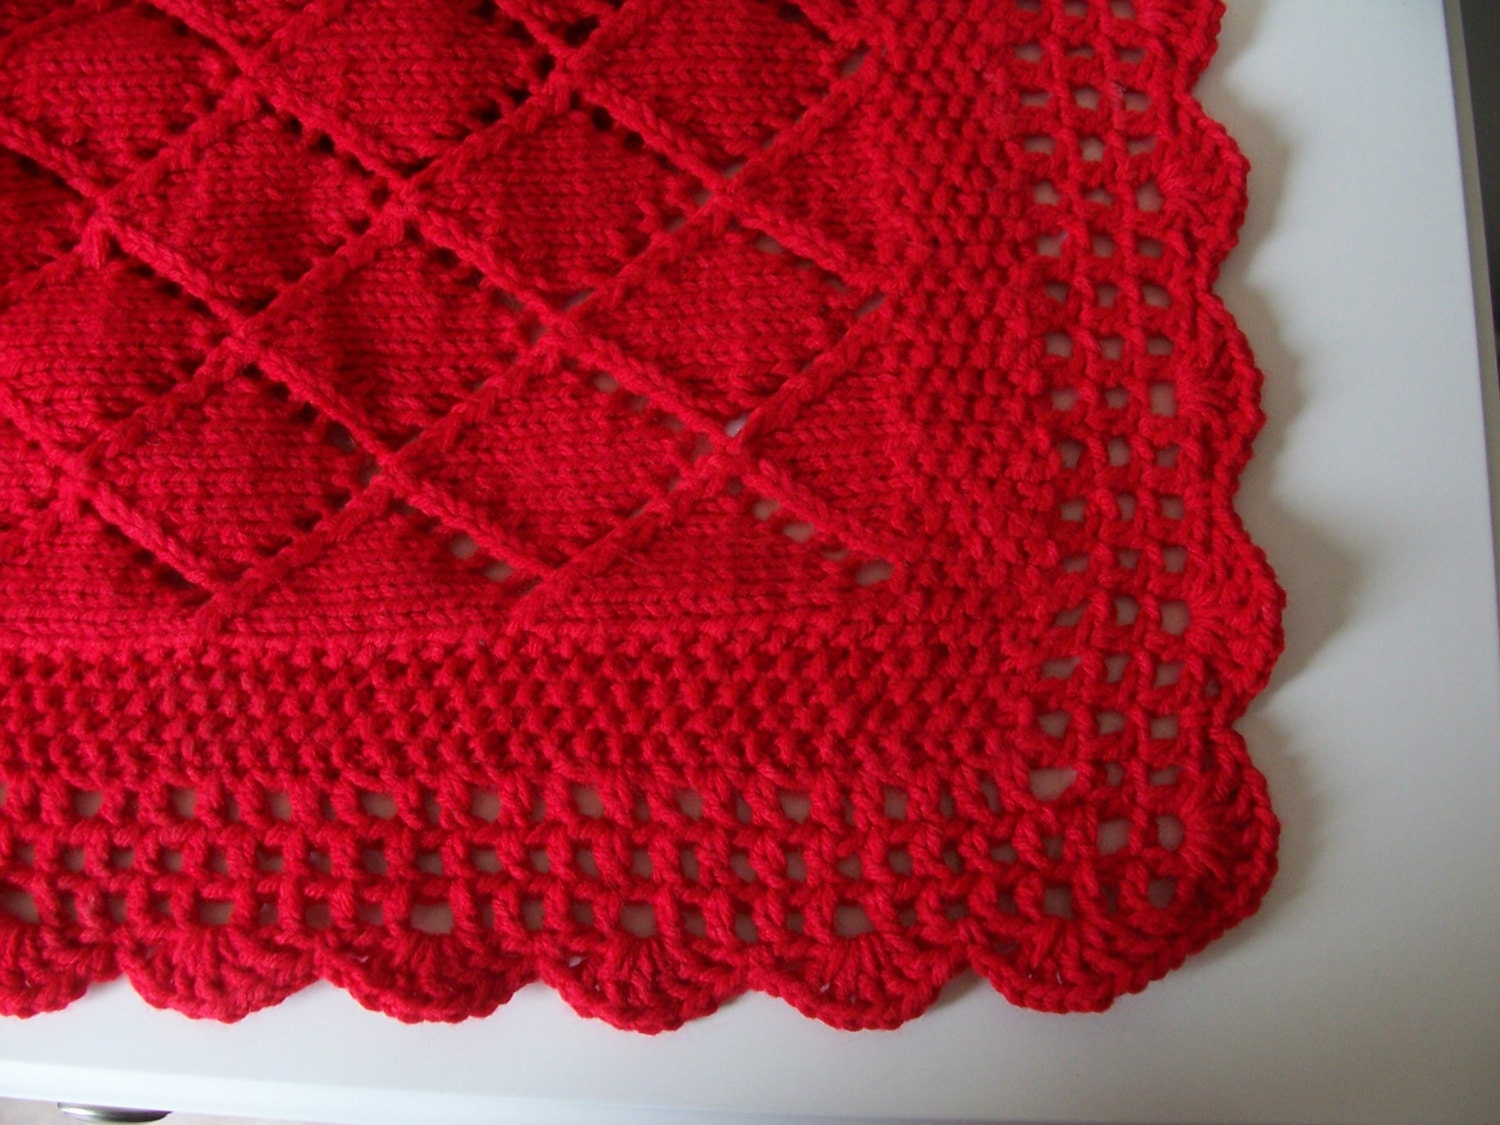 Knitting Edges For Baby Blankets : Red blanket baby knit shower gift